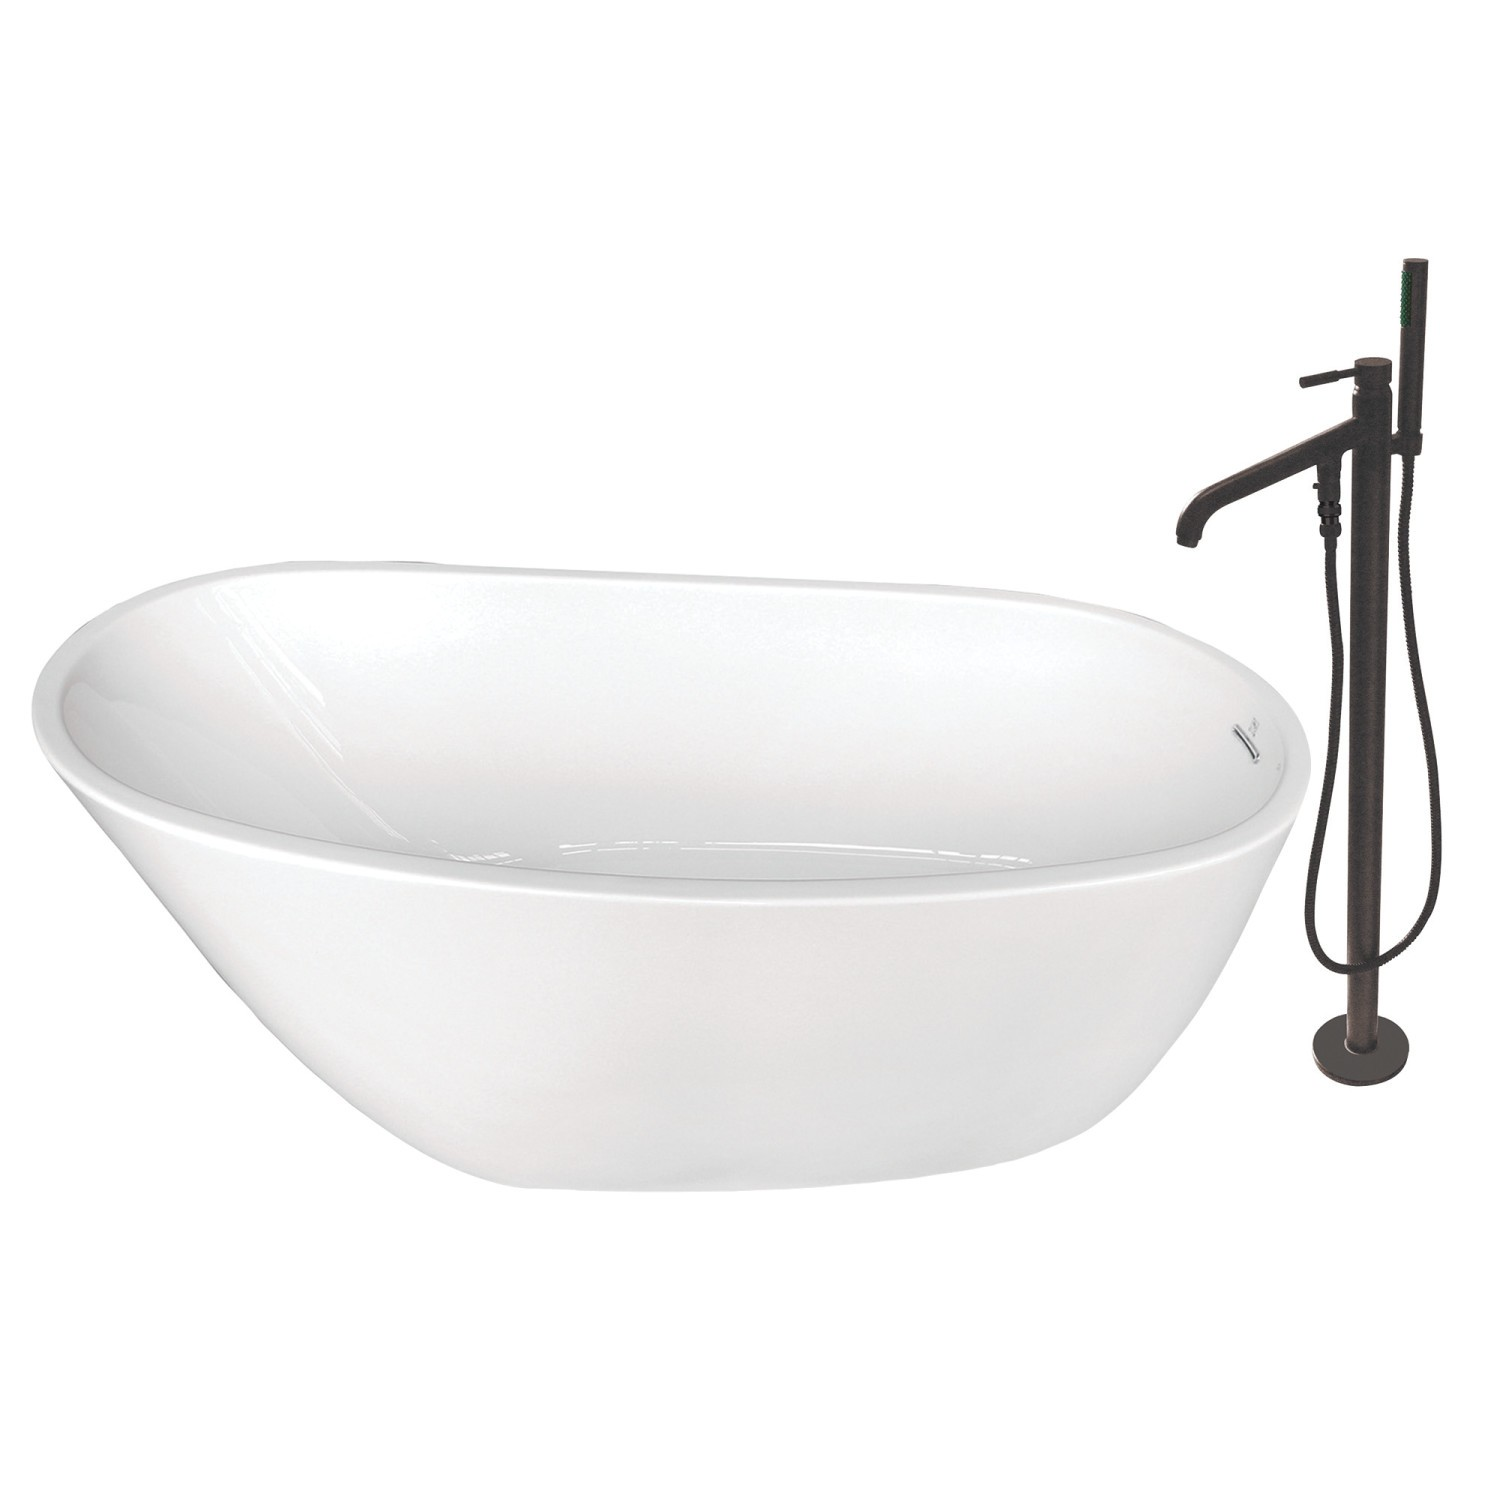 Kingston Brass Ktrs592928a1 Aqua Eden 59 Inch Acrylic Freestanding Tub With Faucet Combo Kingston Brass Ktrs592928a5